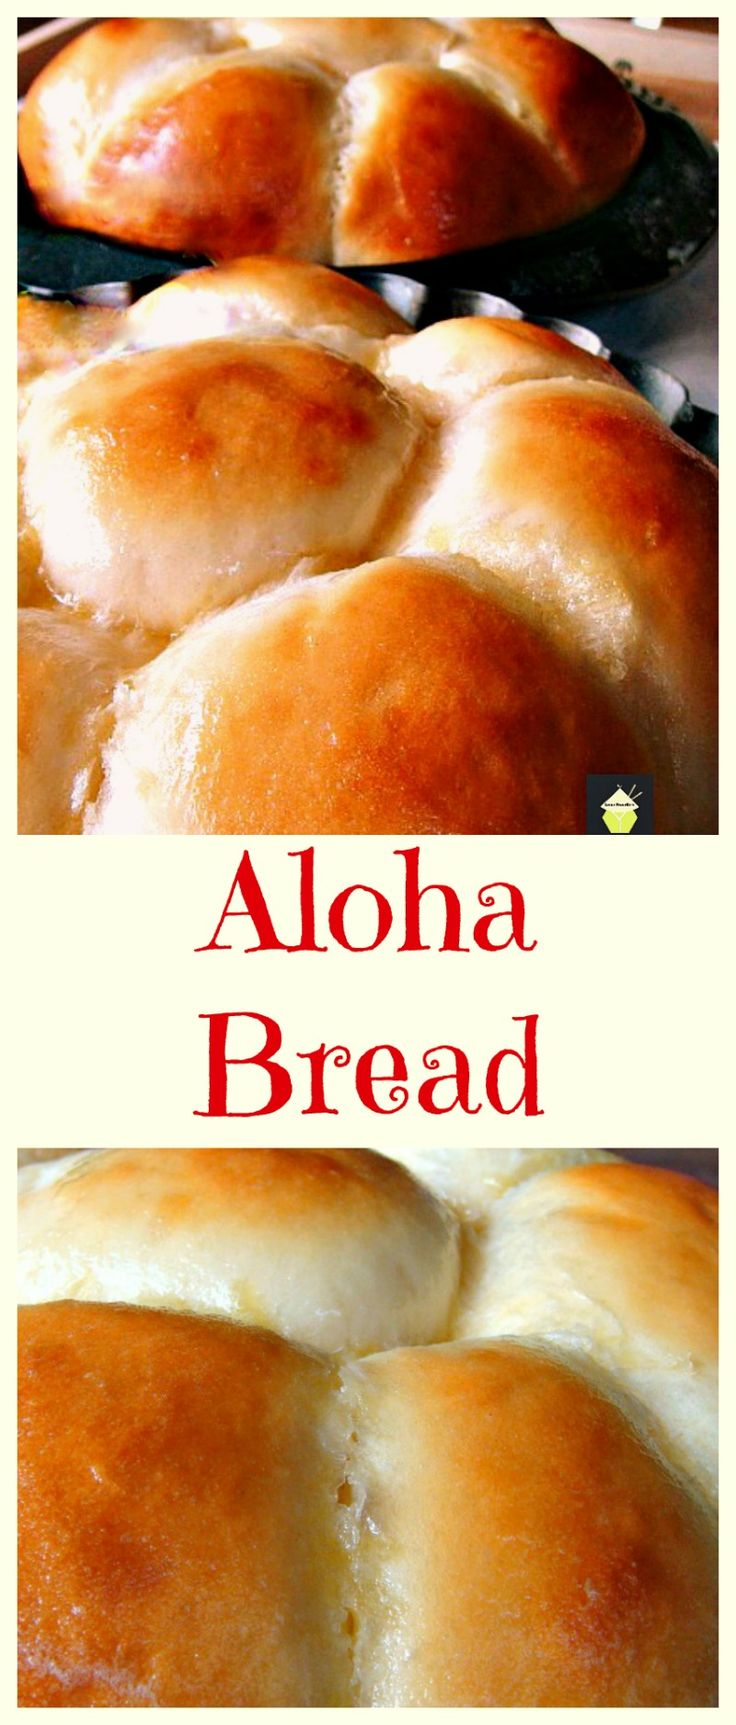 ALOHA BREAD! I made the recipe super easy for you, the rolls are sweet, soft